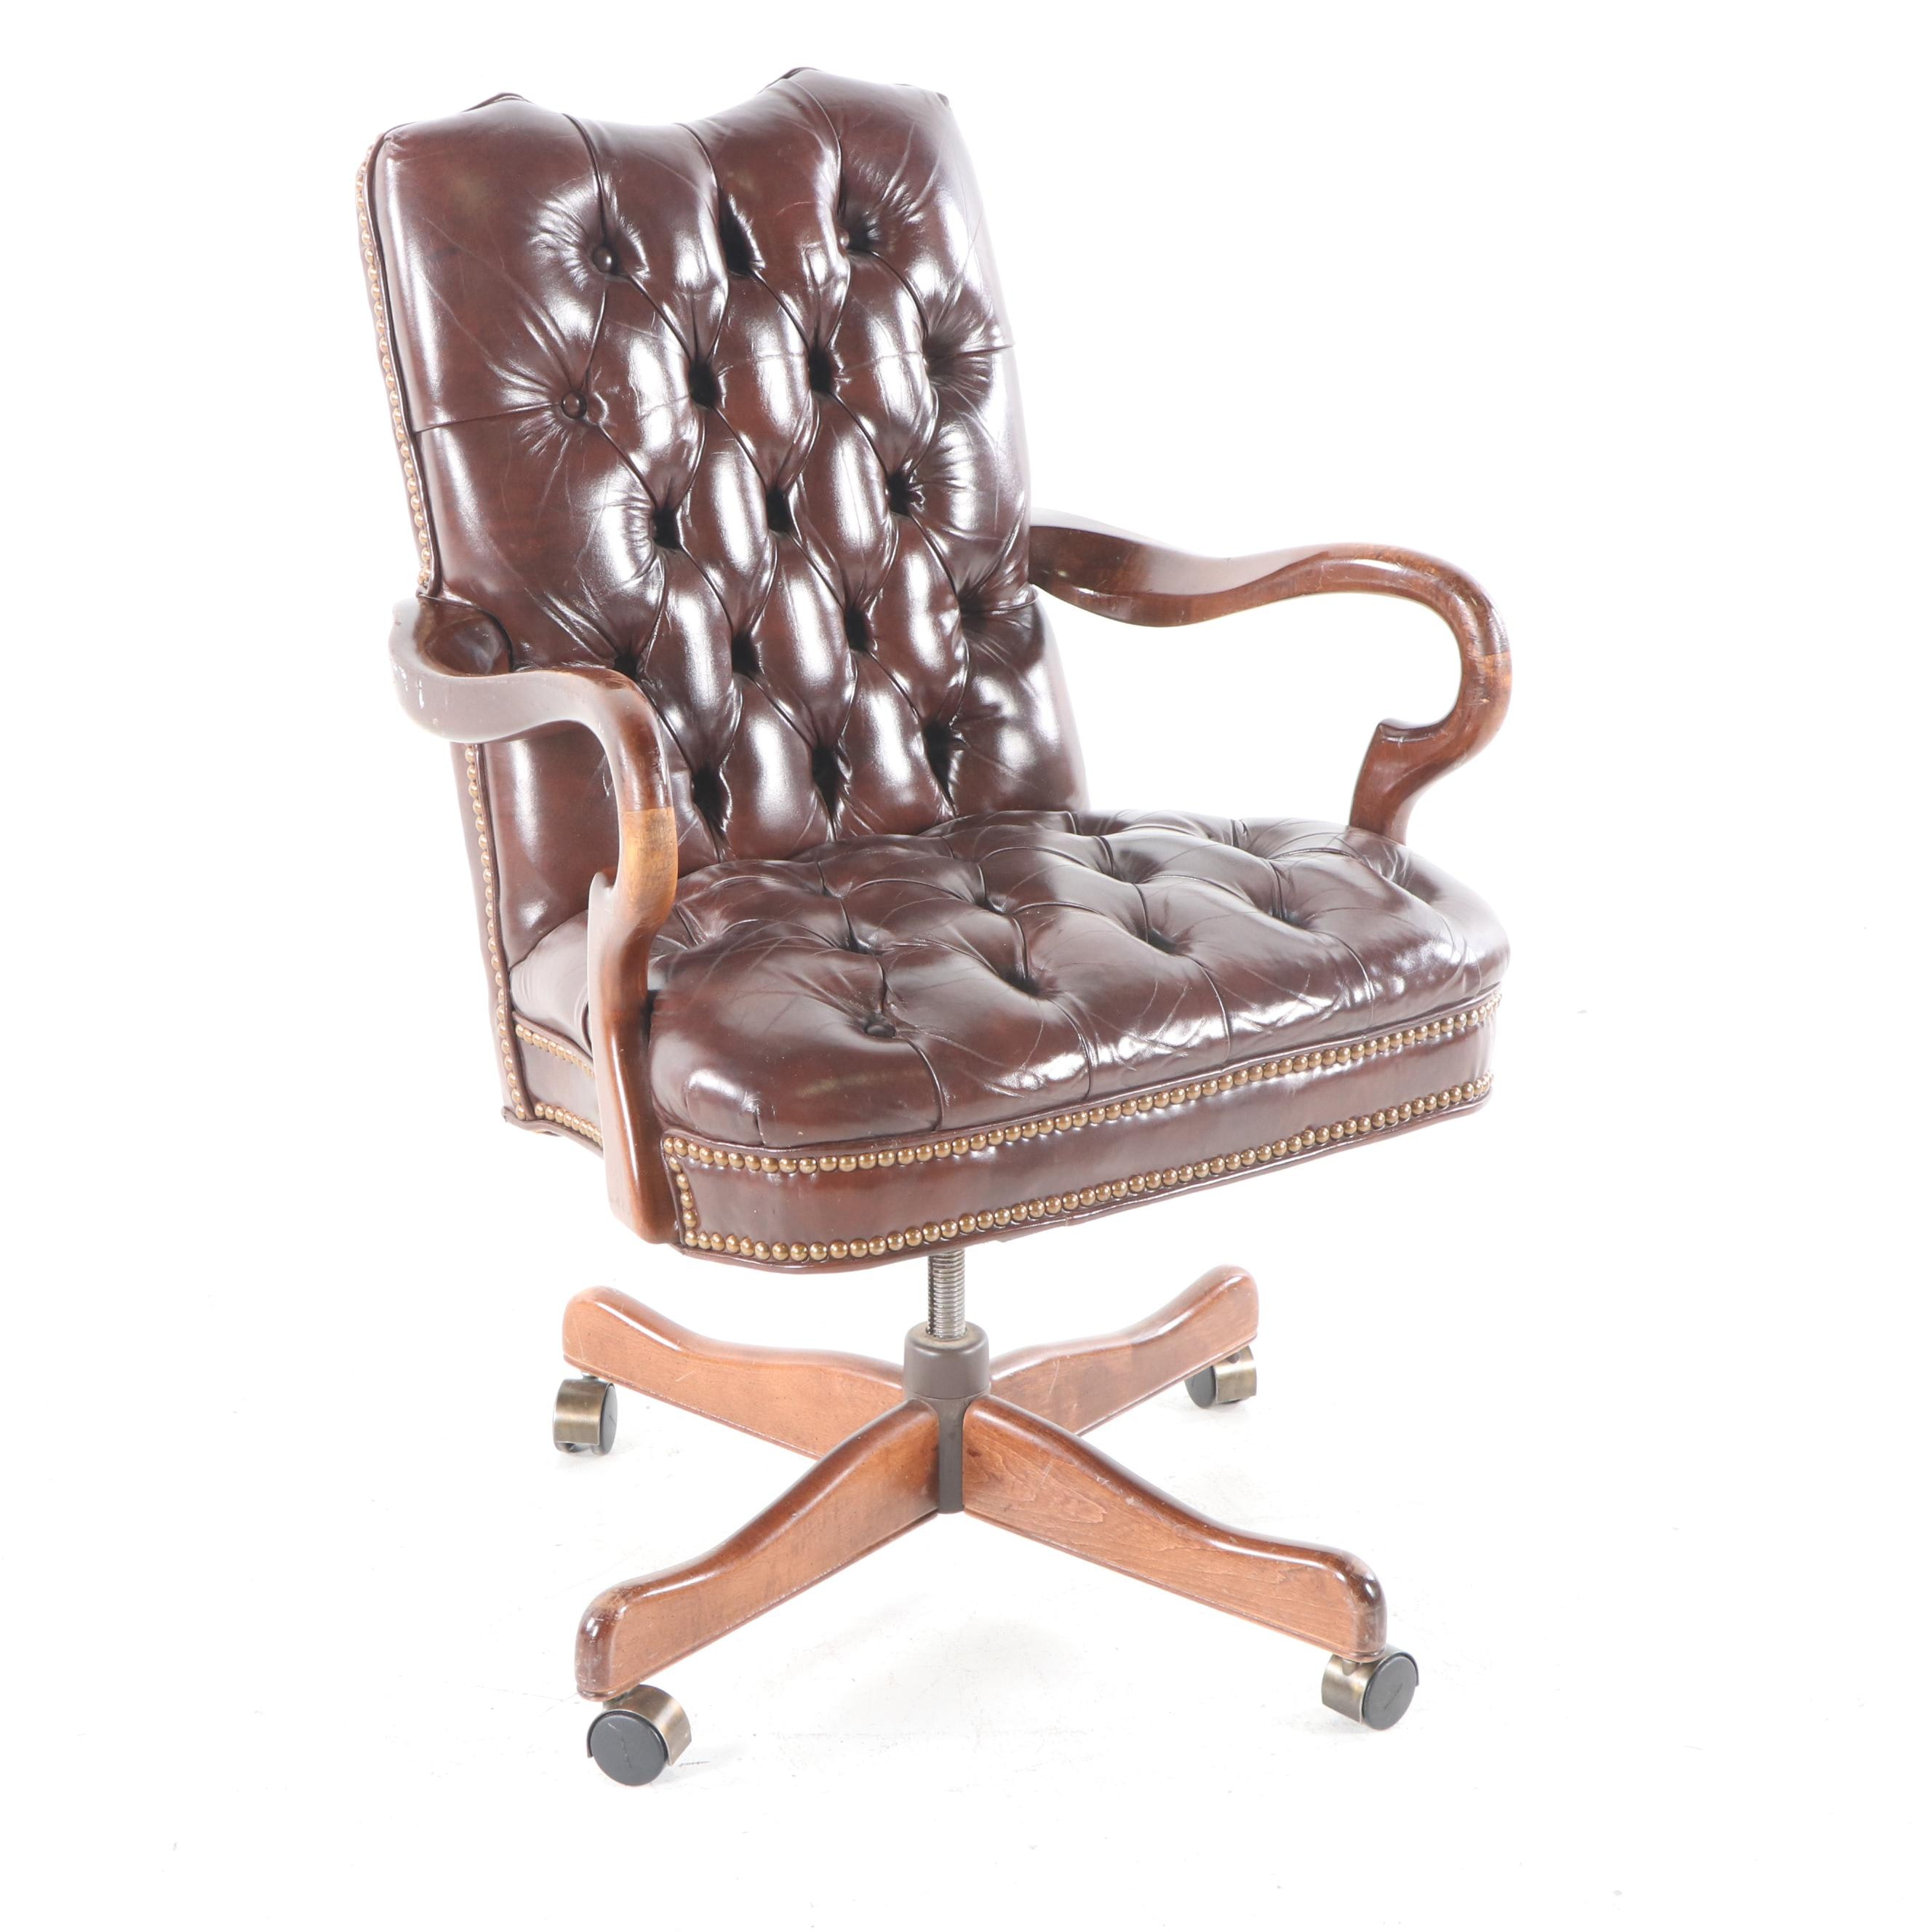 Vintage Leather Executive Desk Chair, 20th Century